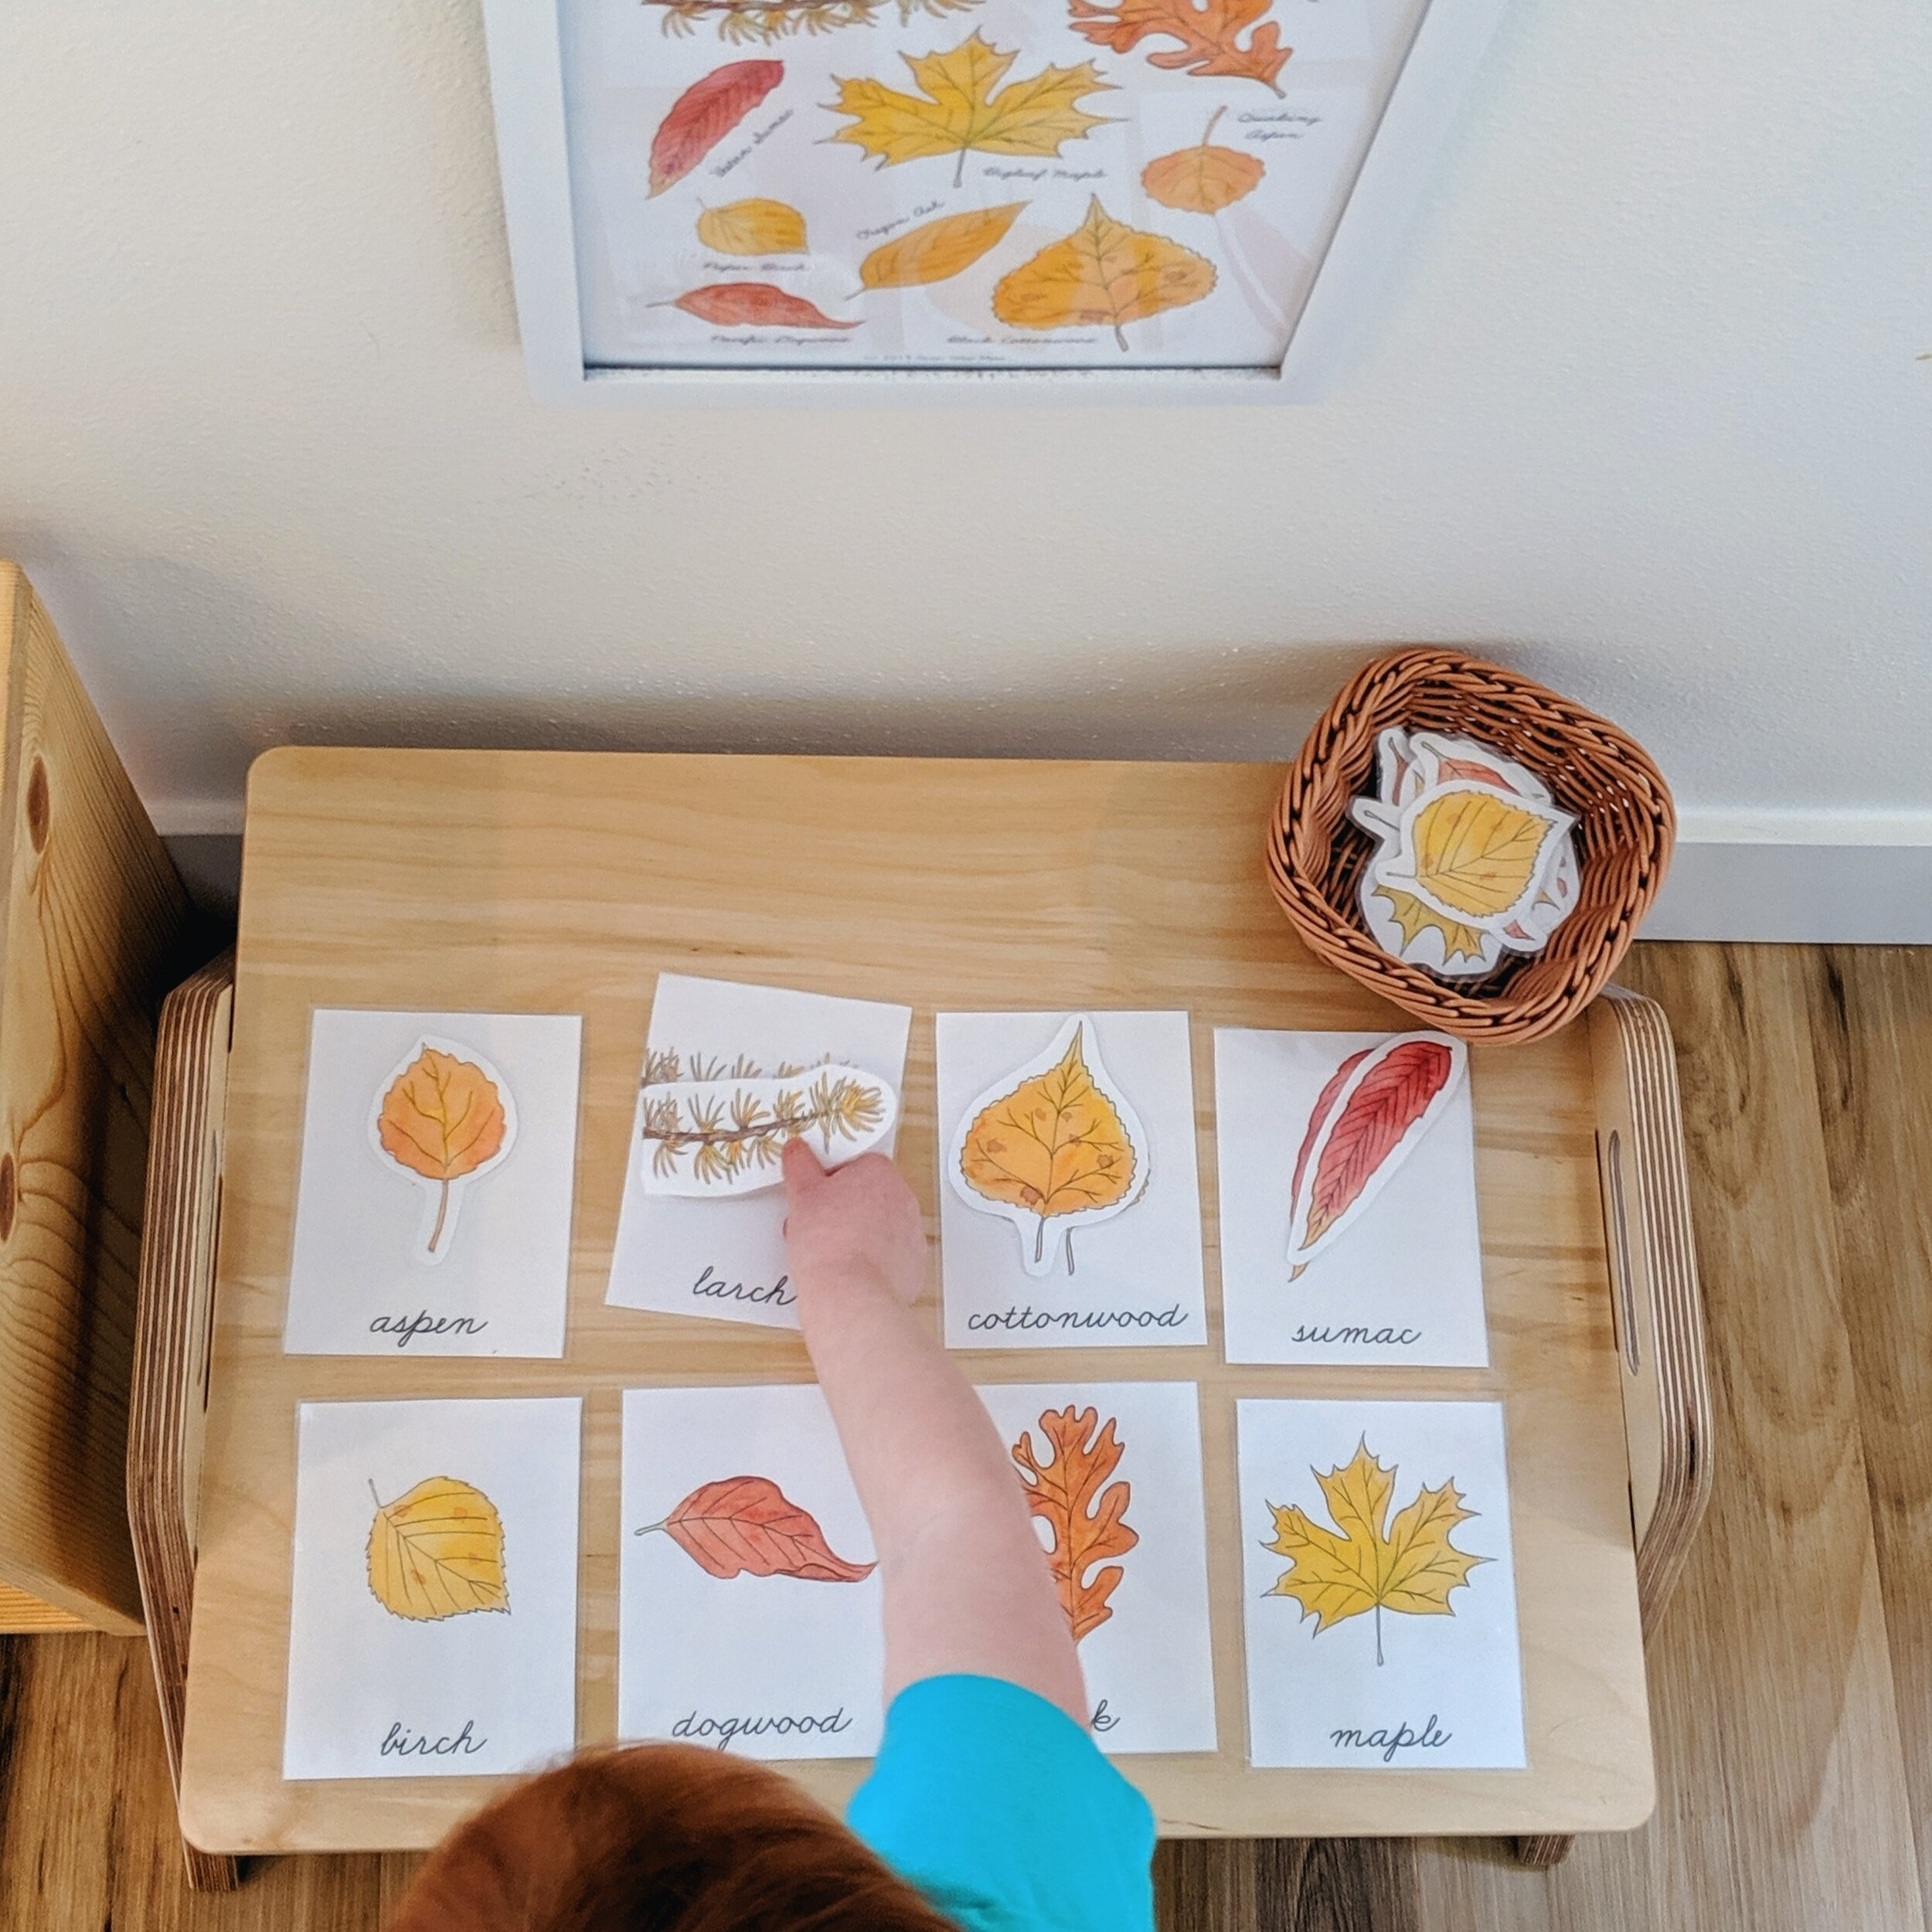 Our Daily Rhythm with a Toddler and a Baby - Montessori in Real Life